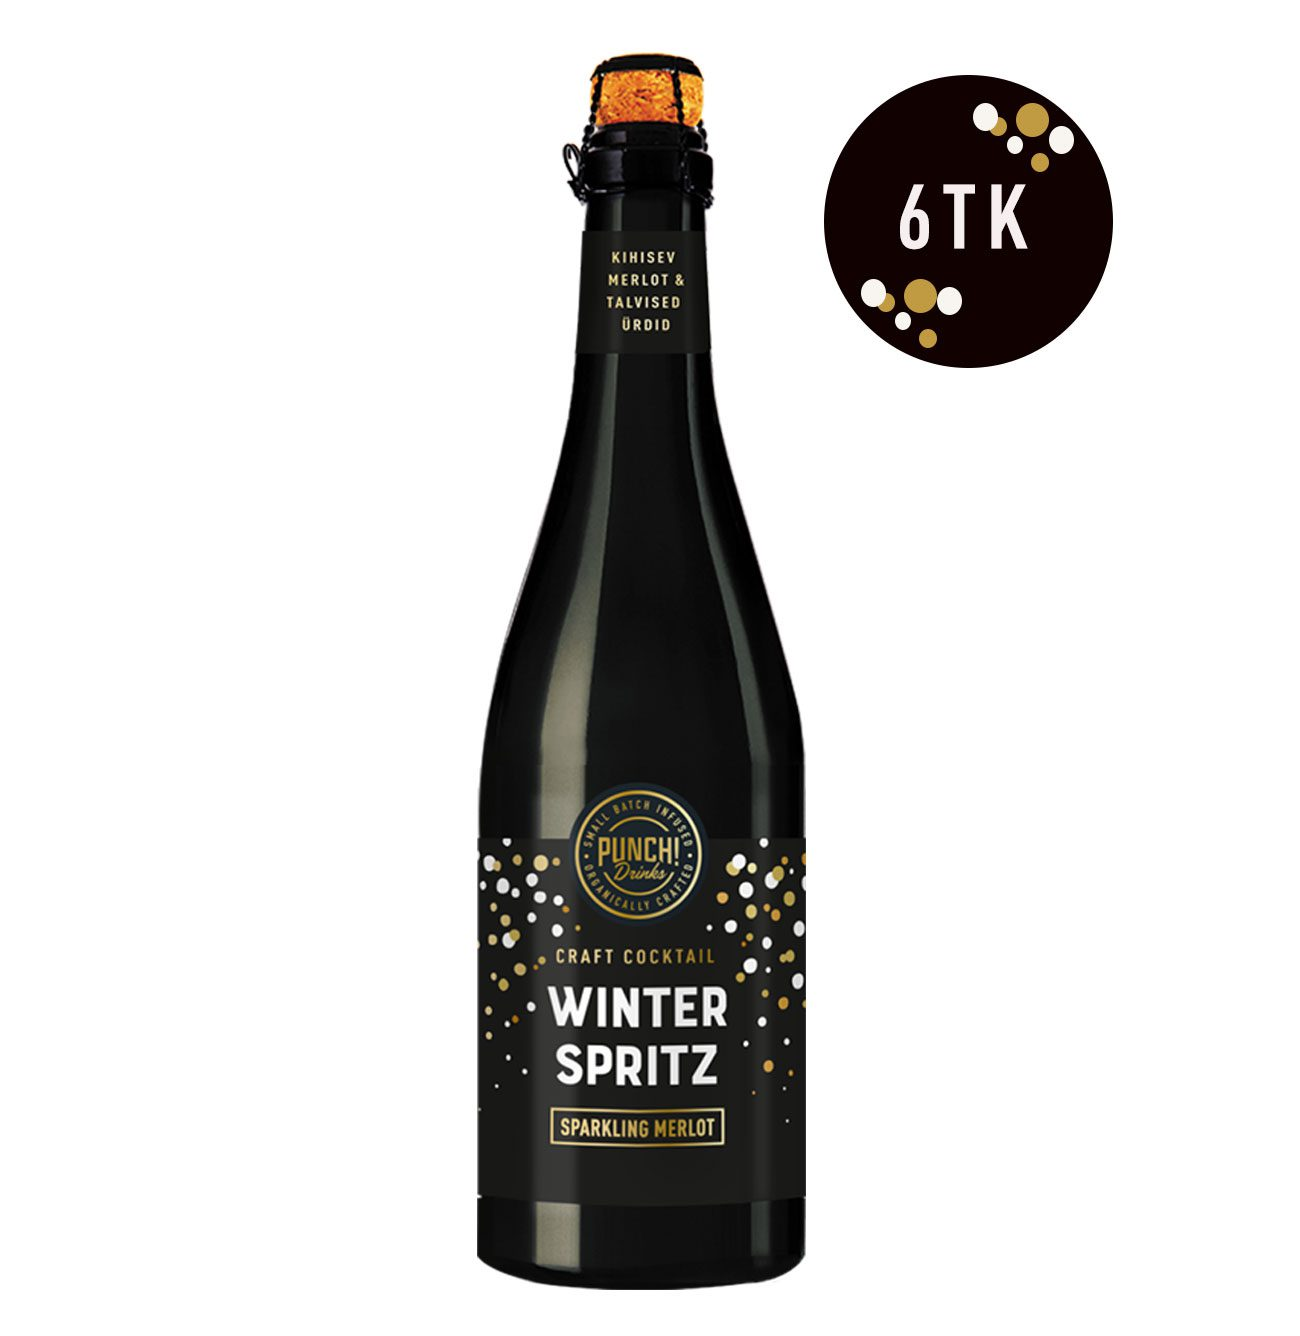 Winter Spritz by Punch Drinks 6tk